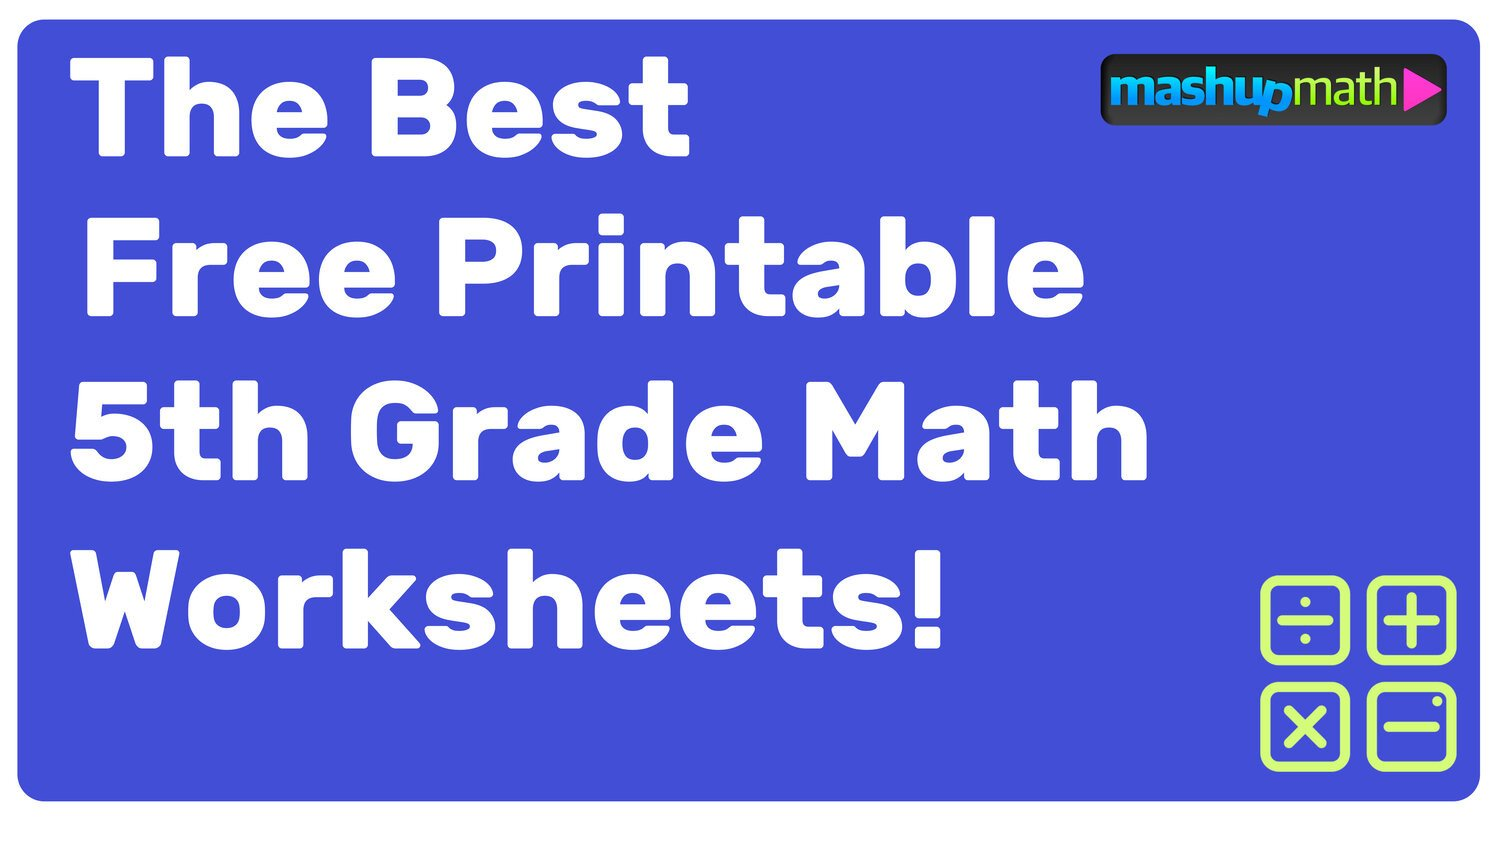 Fifth Grade Measurement Worksheets Free Printable 5th Grade Math Worksheets with Answers